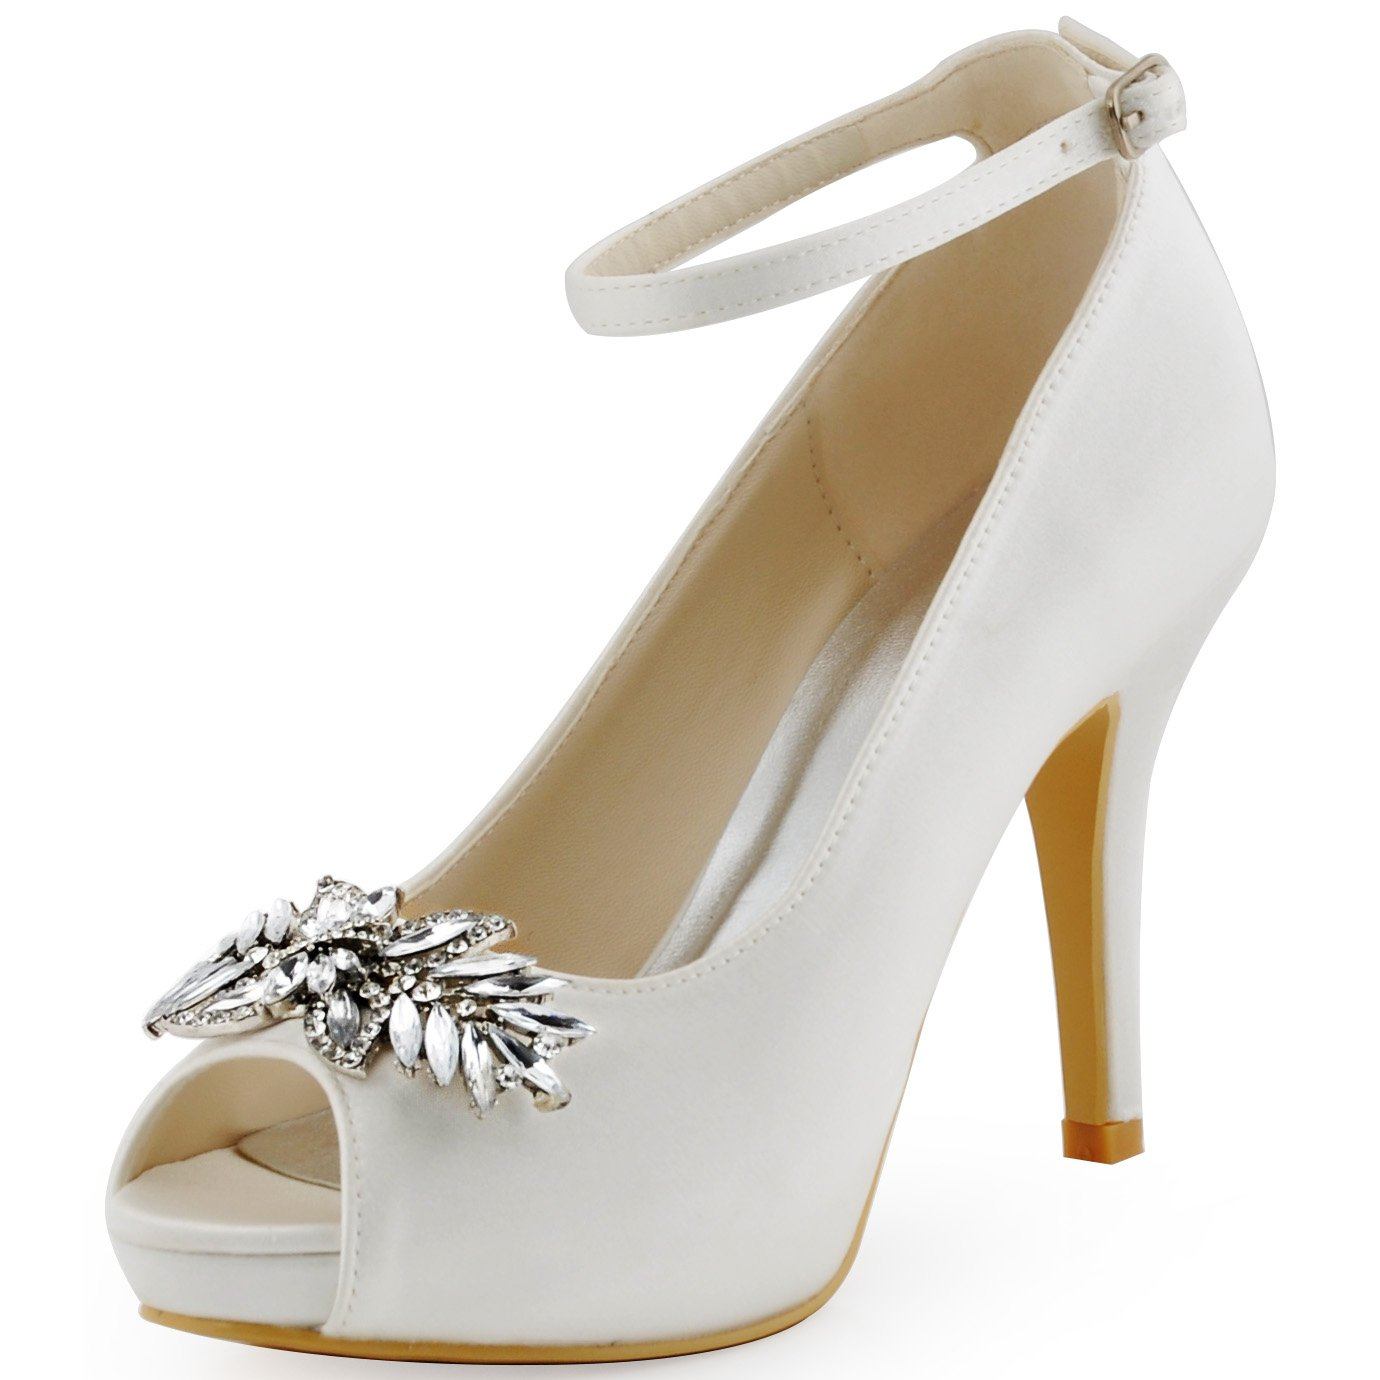 ElegantPark HP1544I Women Pumps Peep Toe Leaves Clips Rhinestones Platform Stiletto Wedding Bridal Shoes Ivory US 8